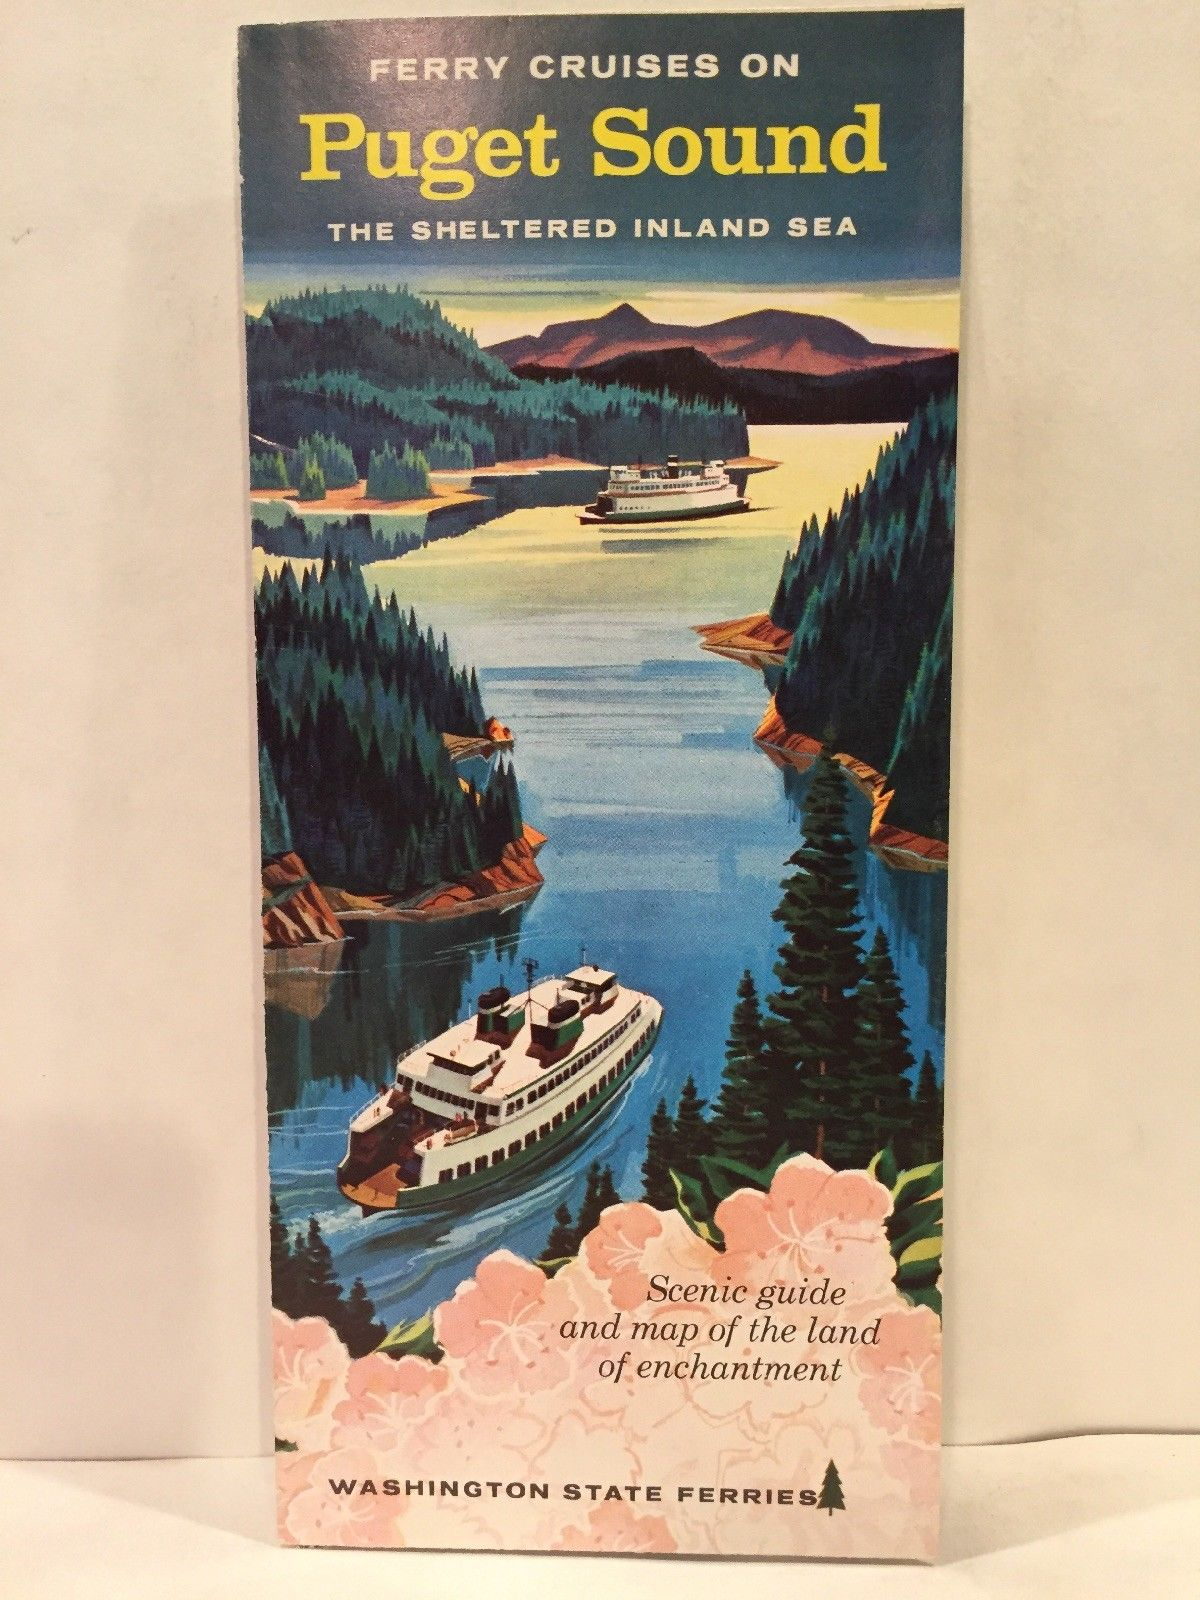 Picture of: 1959 Ferry Cruises On Puget Sound Washington State Ferries Travel Brochure Map Cyber Dutchman